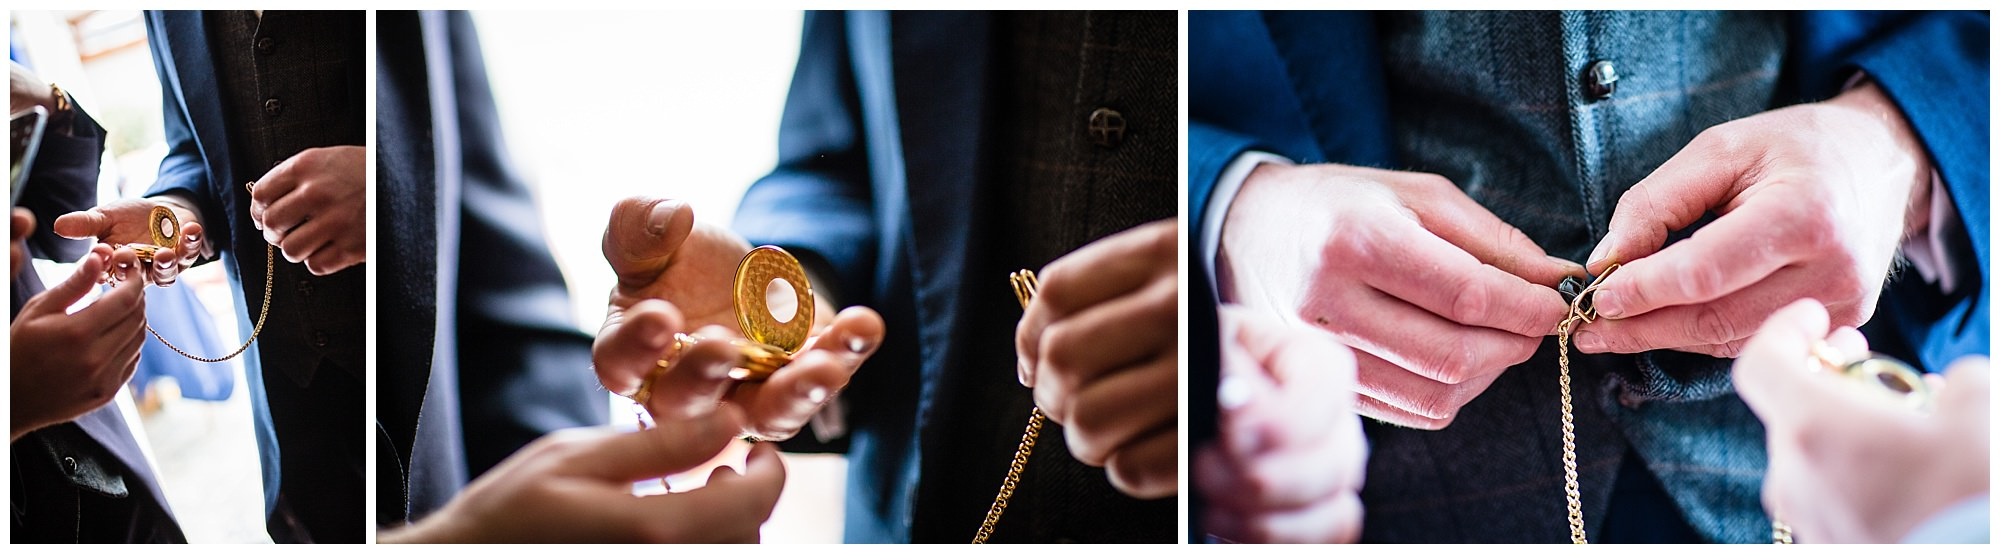 detail shots of grooms new pocket watch